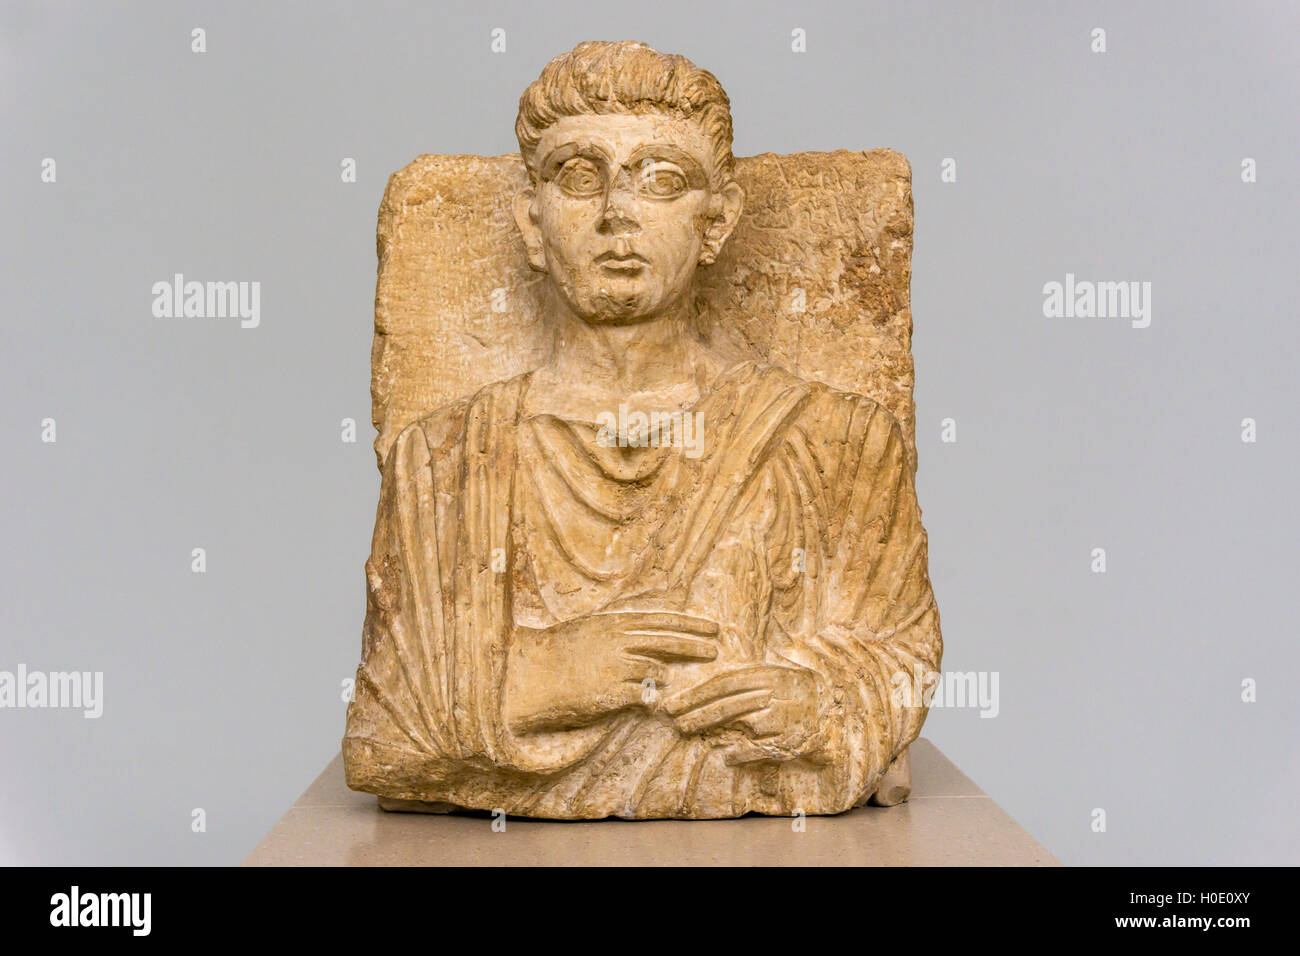 This statue is a funerary relief of a 2nd century inhabitant of Palmyra in Syria, identified only as Maliku. - Stock Image